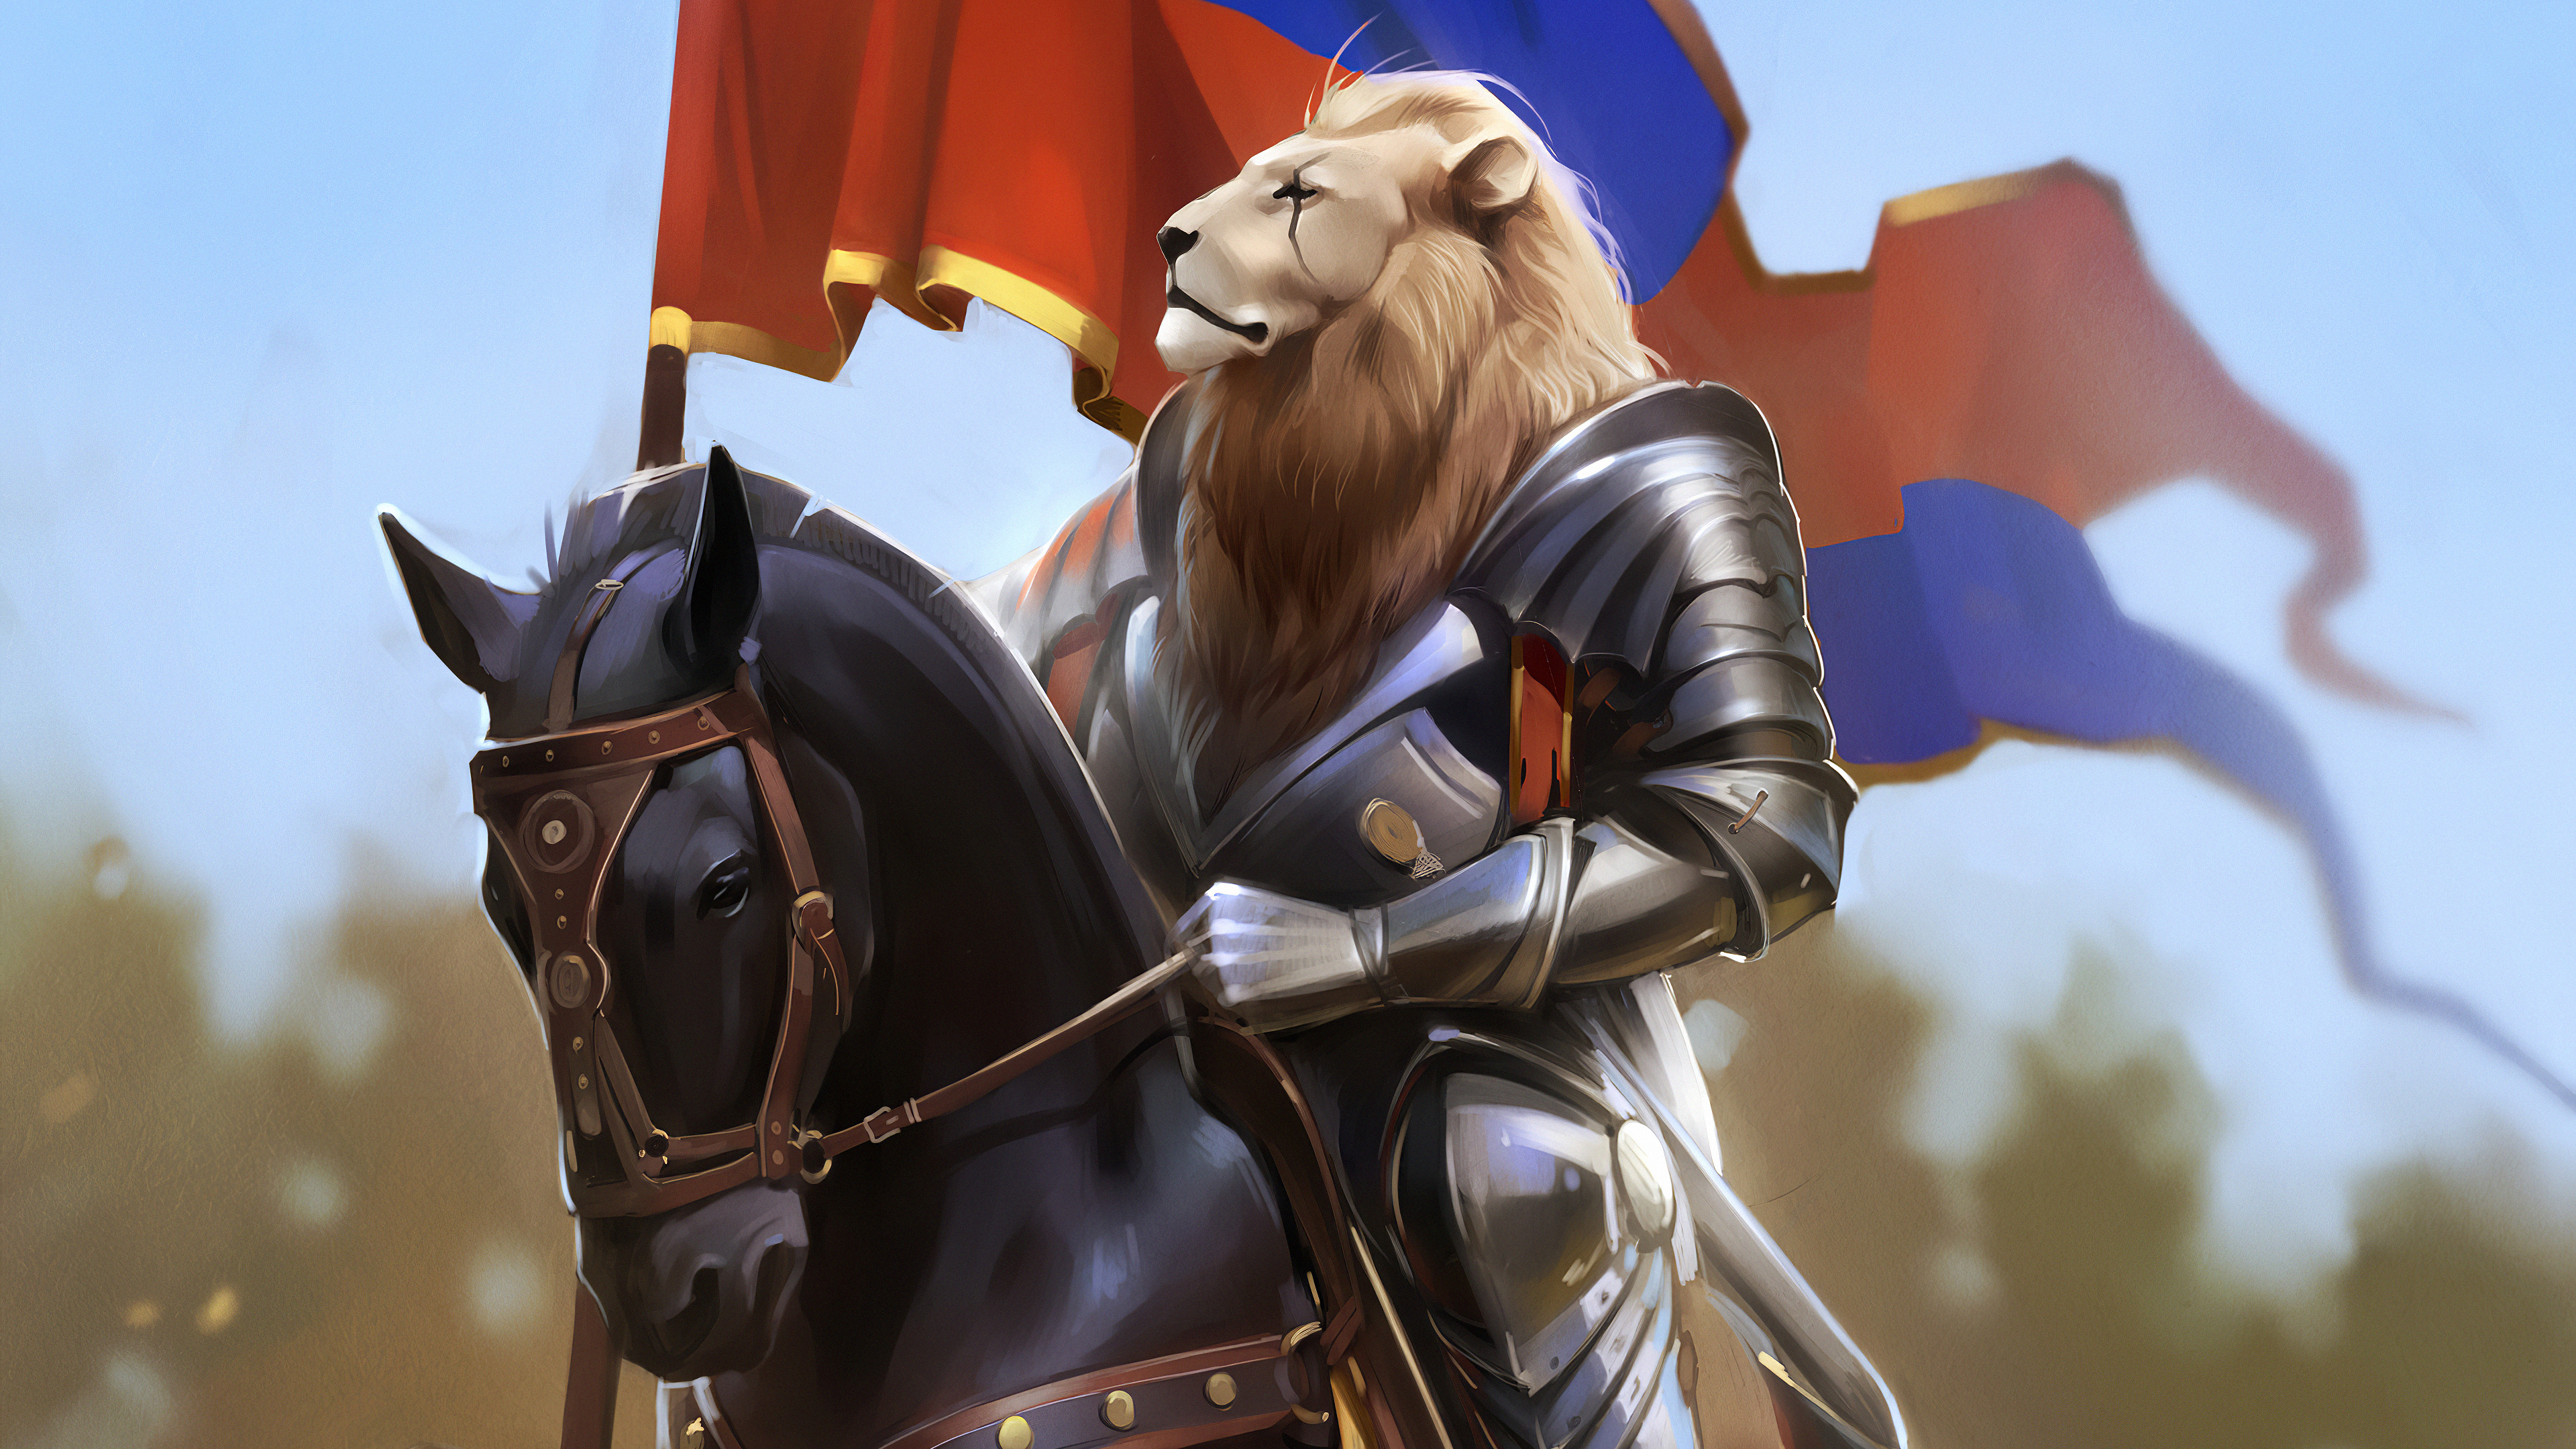 lion king on horse 1578254801 - Lion King On Horse -